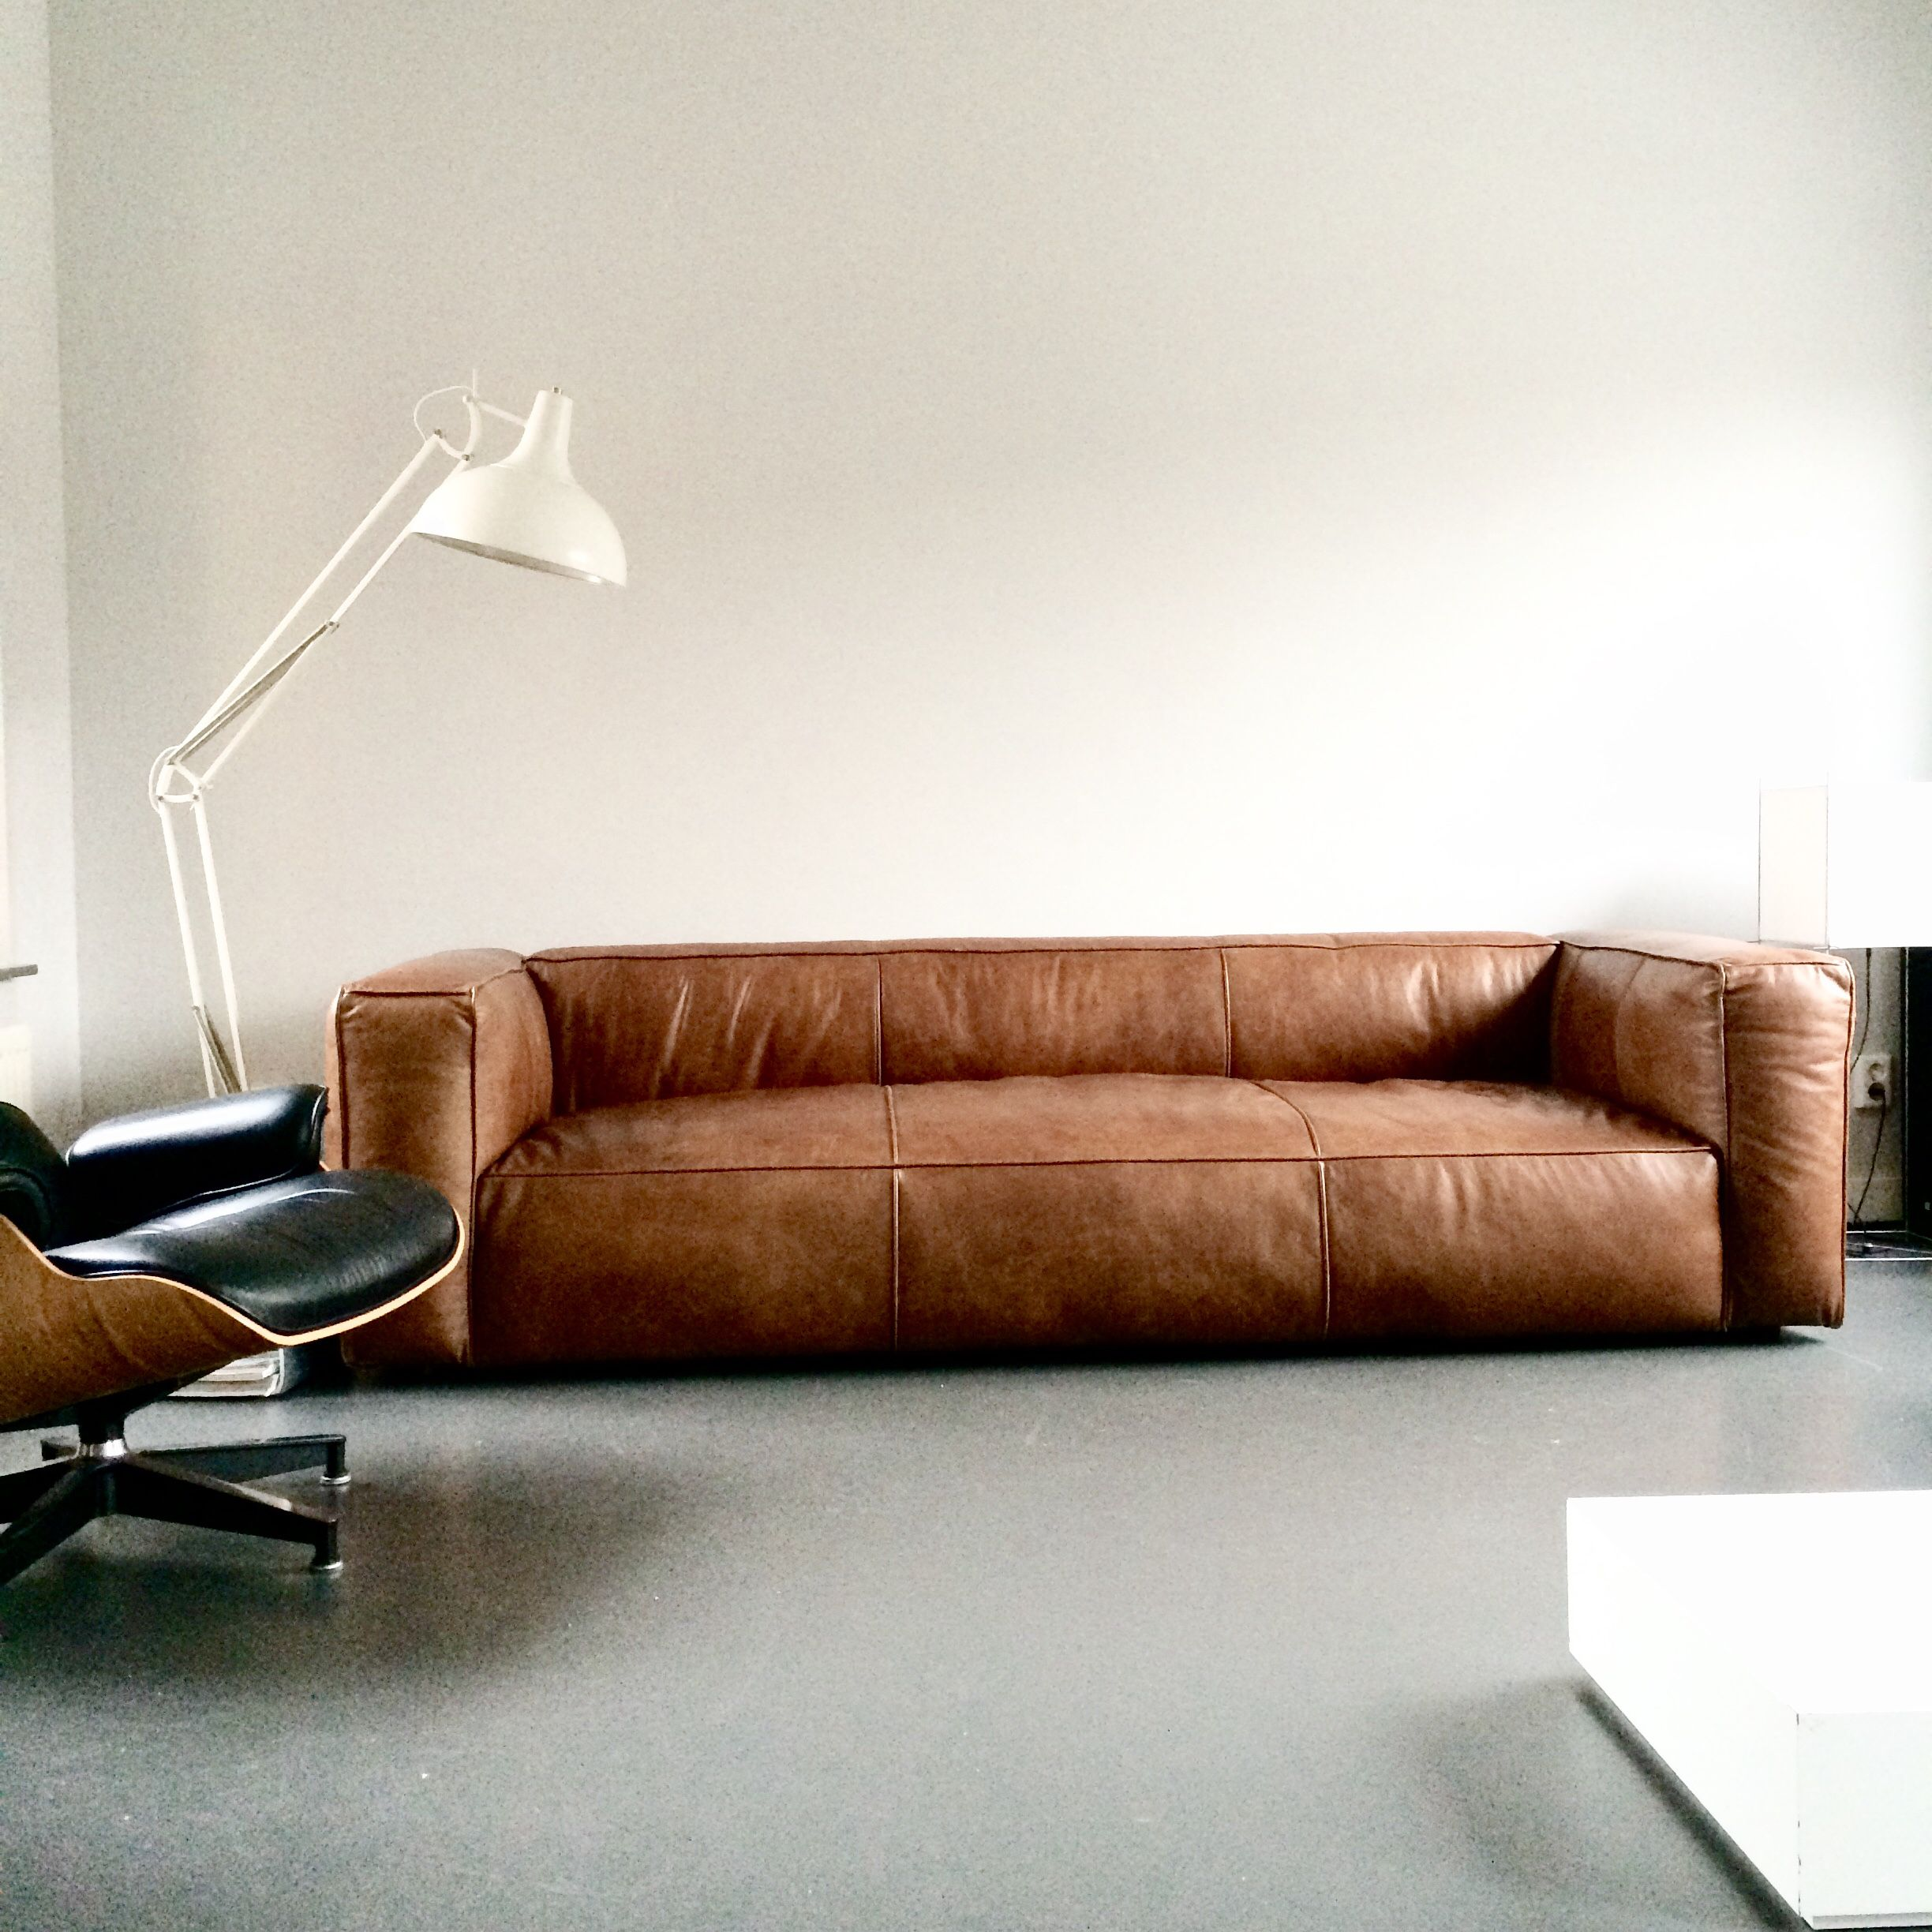 polaris contemporary leather sofa set bed couch covers love this vintage design cognac